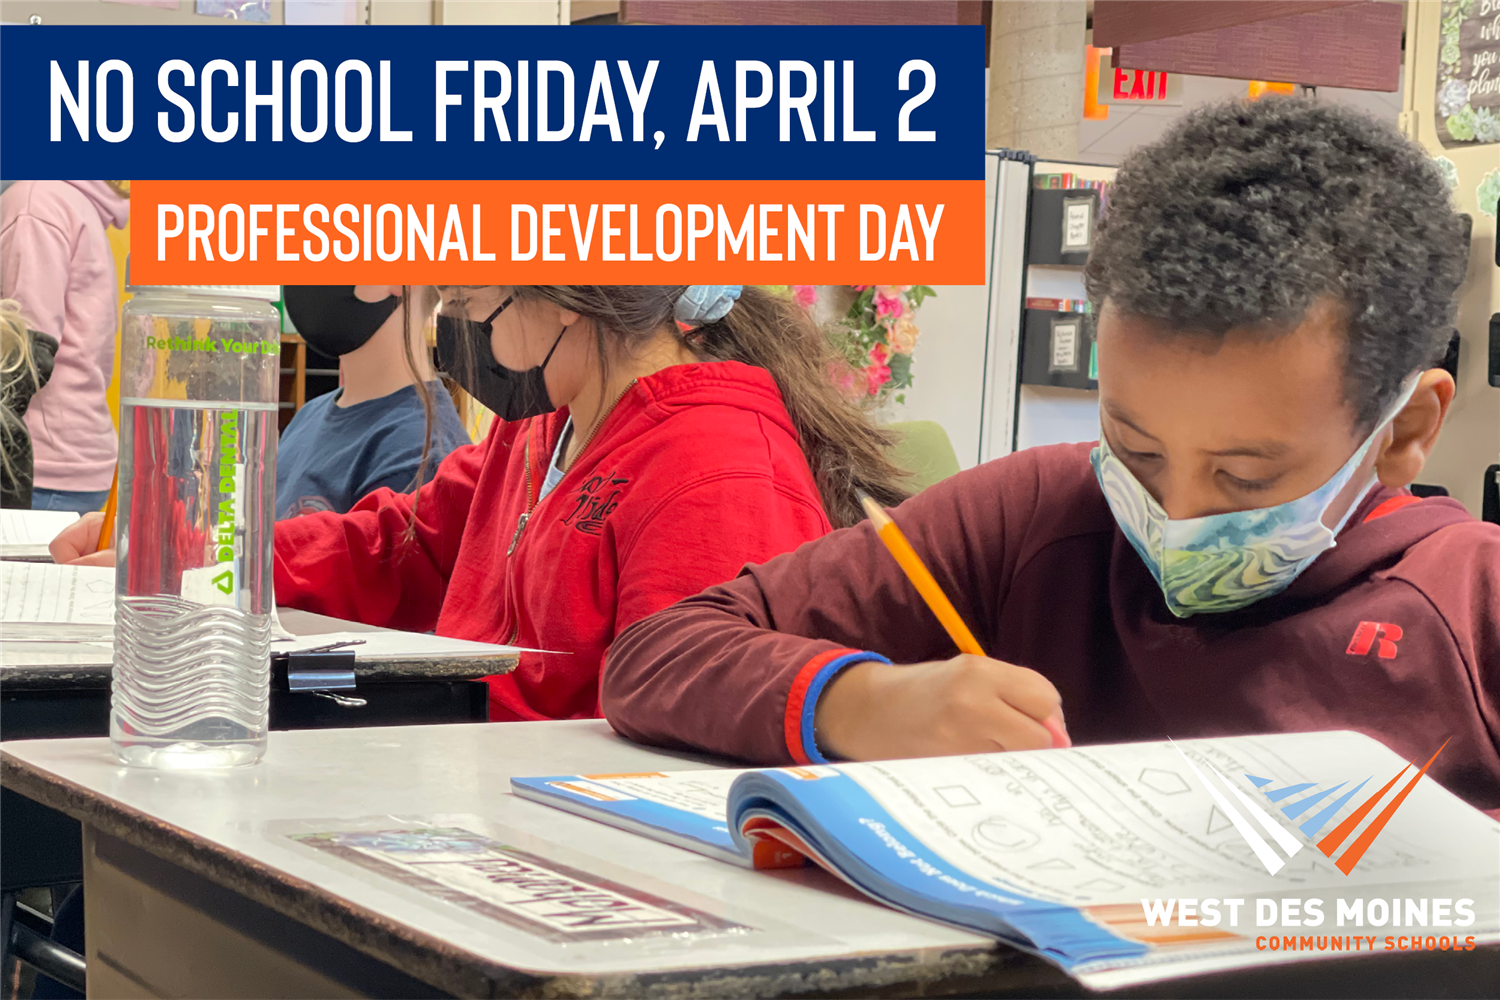 no school friday april 2 professional development day